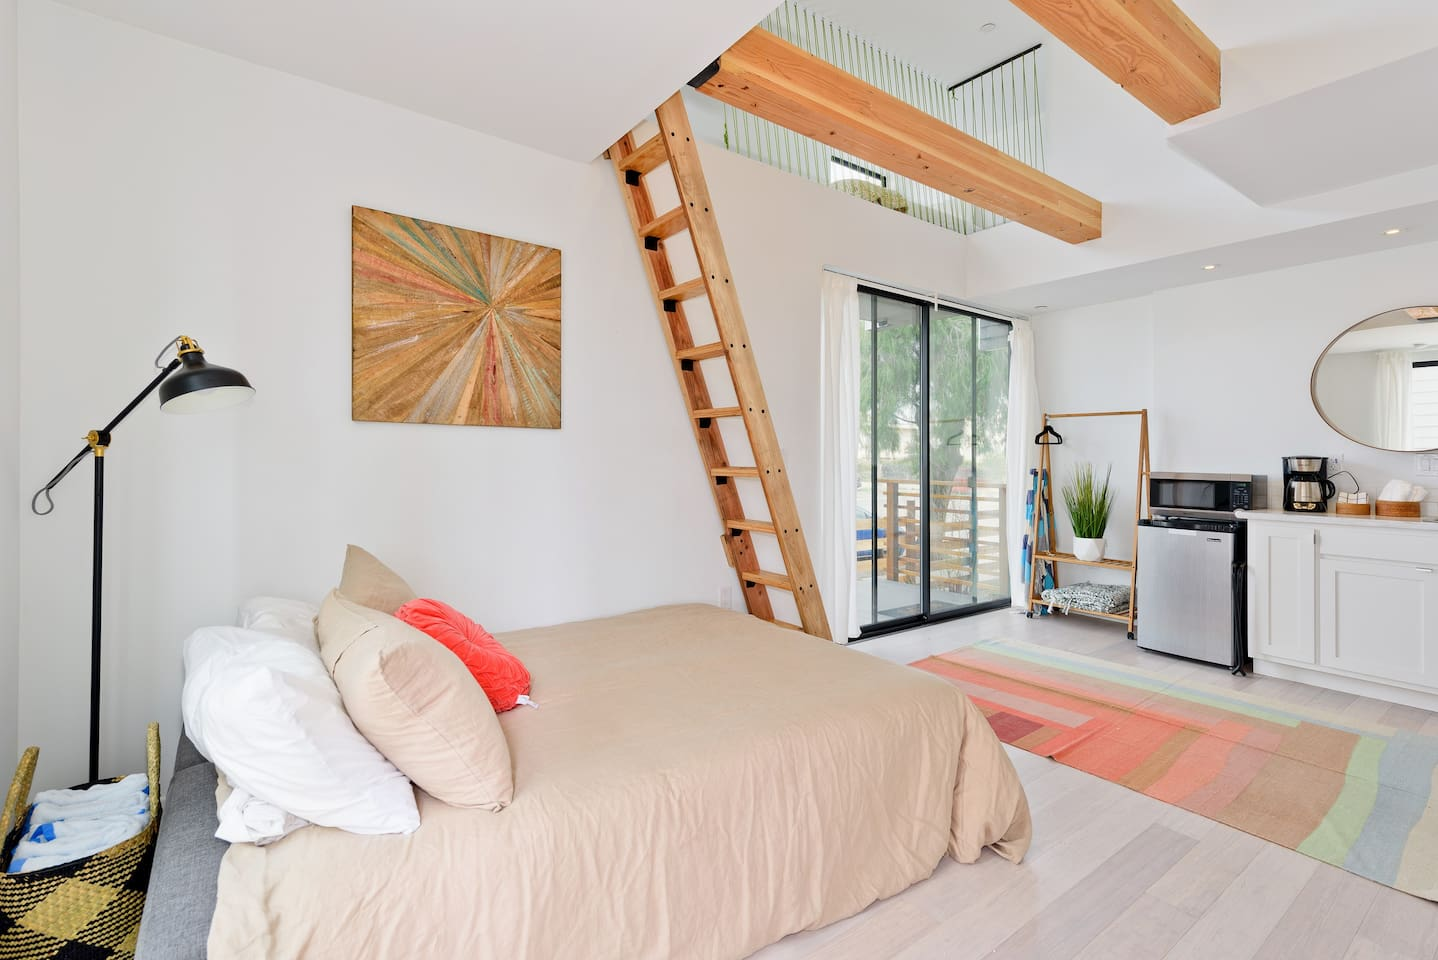 """""""A perfect little space, perfectly designed with everything you need, even coffee in the morning! The lofted beds are so cozy, and I love the paracord """"walls"""", very funky. Great location a quick walk to the beach and everything fun in Ocean Beach. Highly recommended!"""" -Fiona & Tommy from St. Louis, Feb. 2018"""